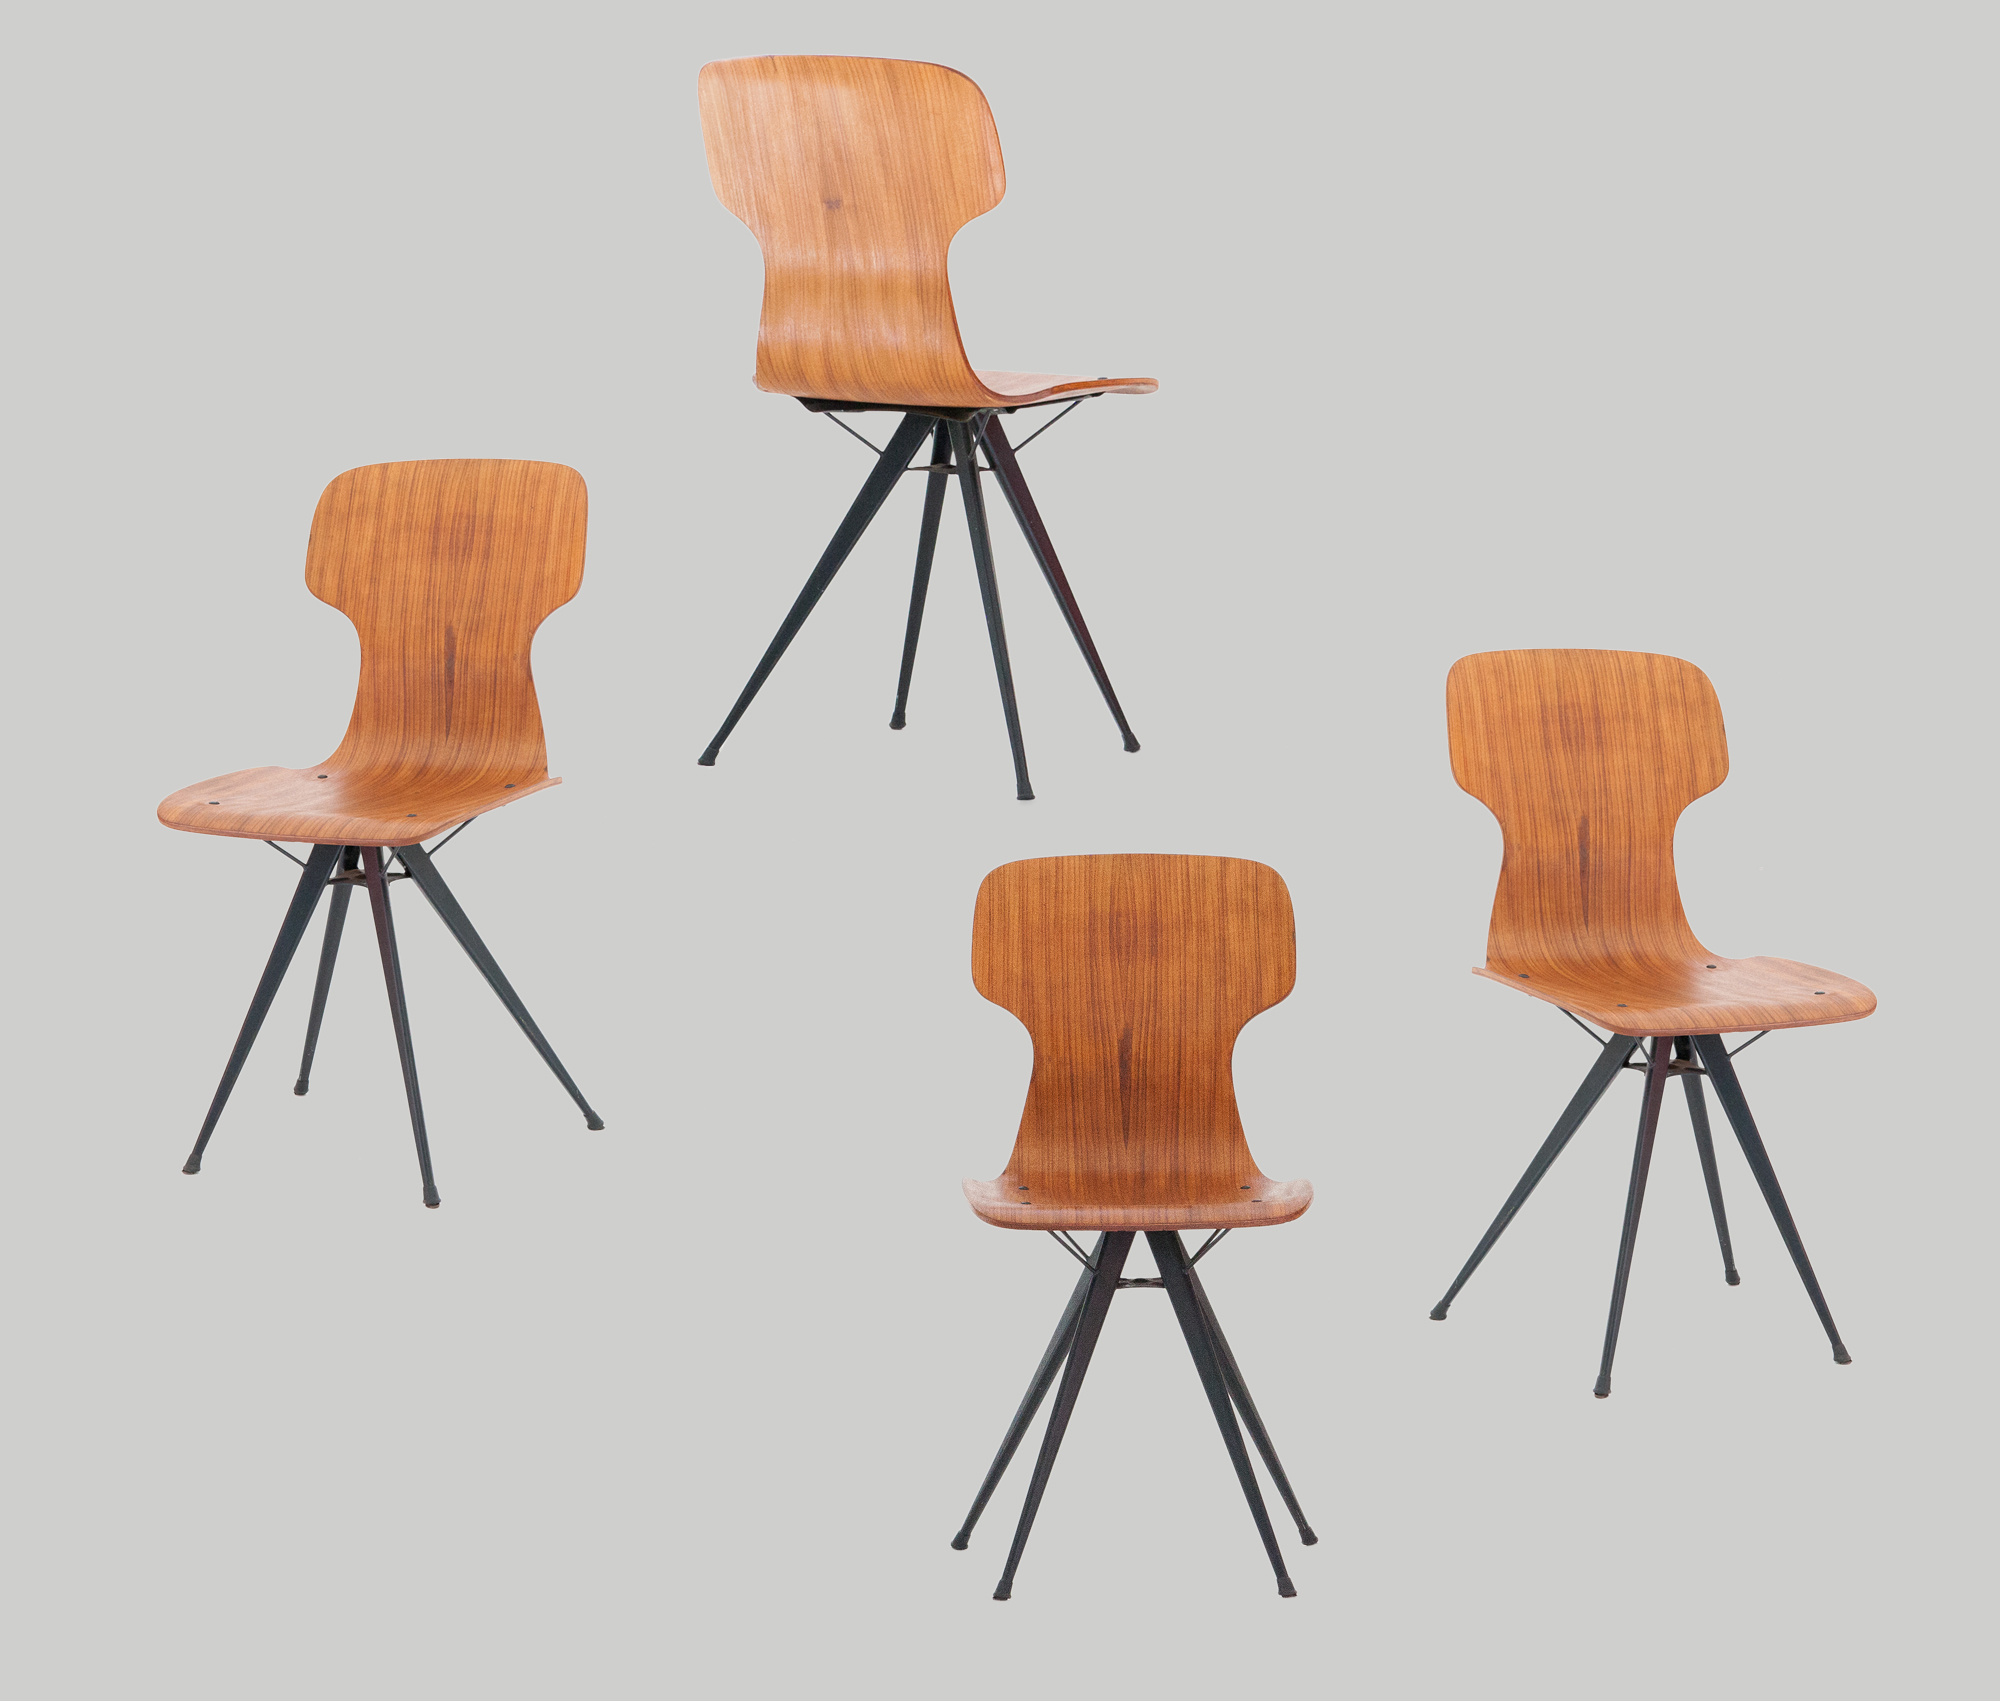 1950s-italian-conical-iron-legs-and-curved-teak-chairs-1-se280